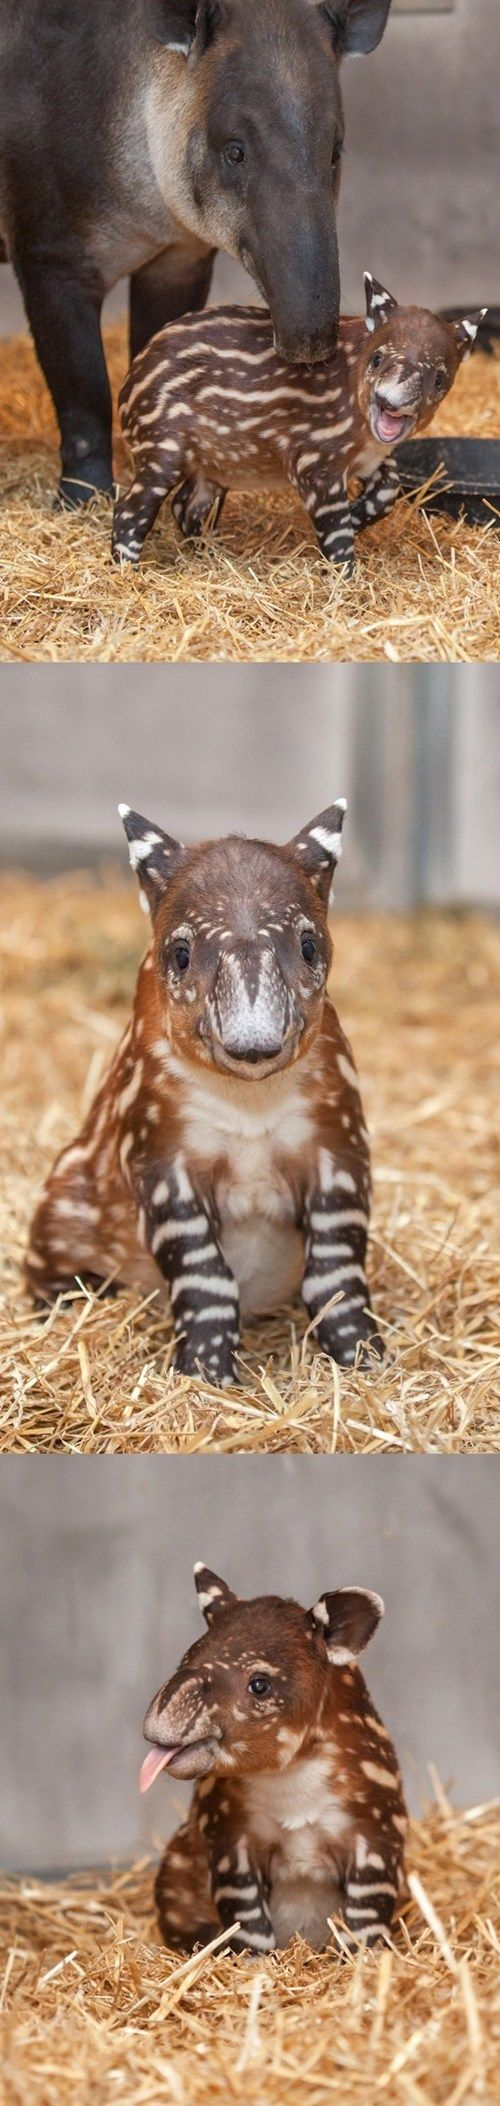 This Baby Tapir is the Most Painfully Adorable Thing You'll See All Week http://cheezburger.com/7019565824